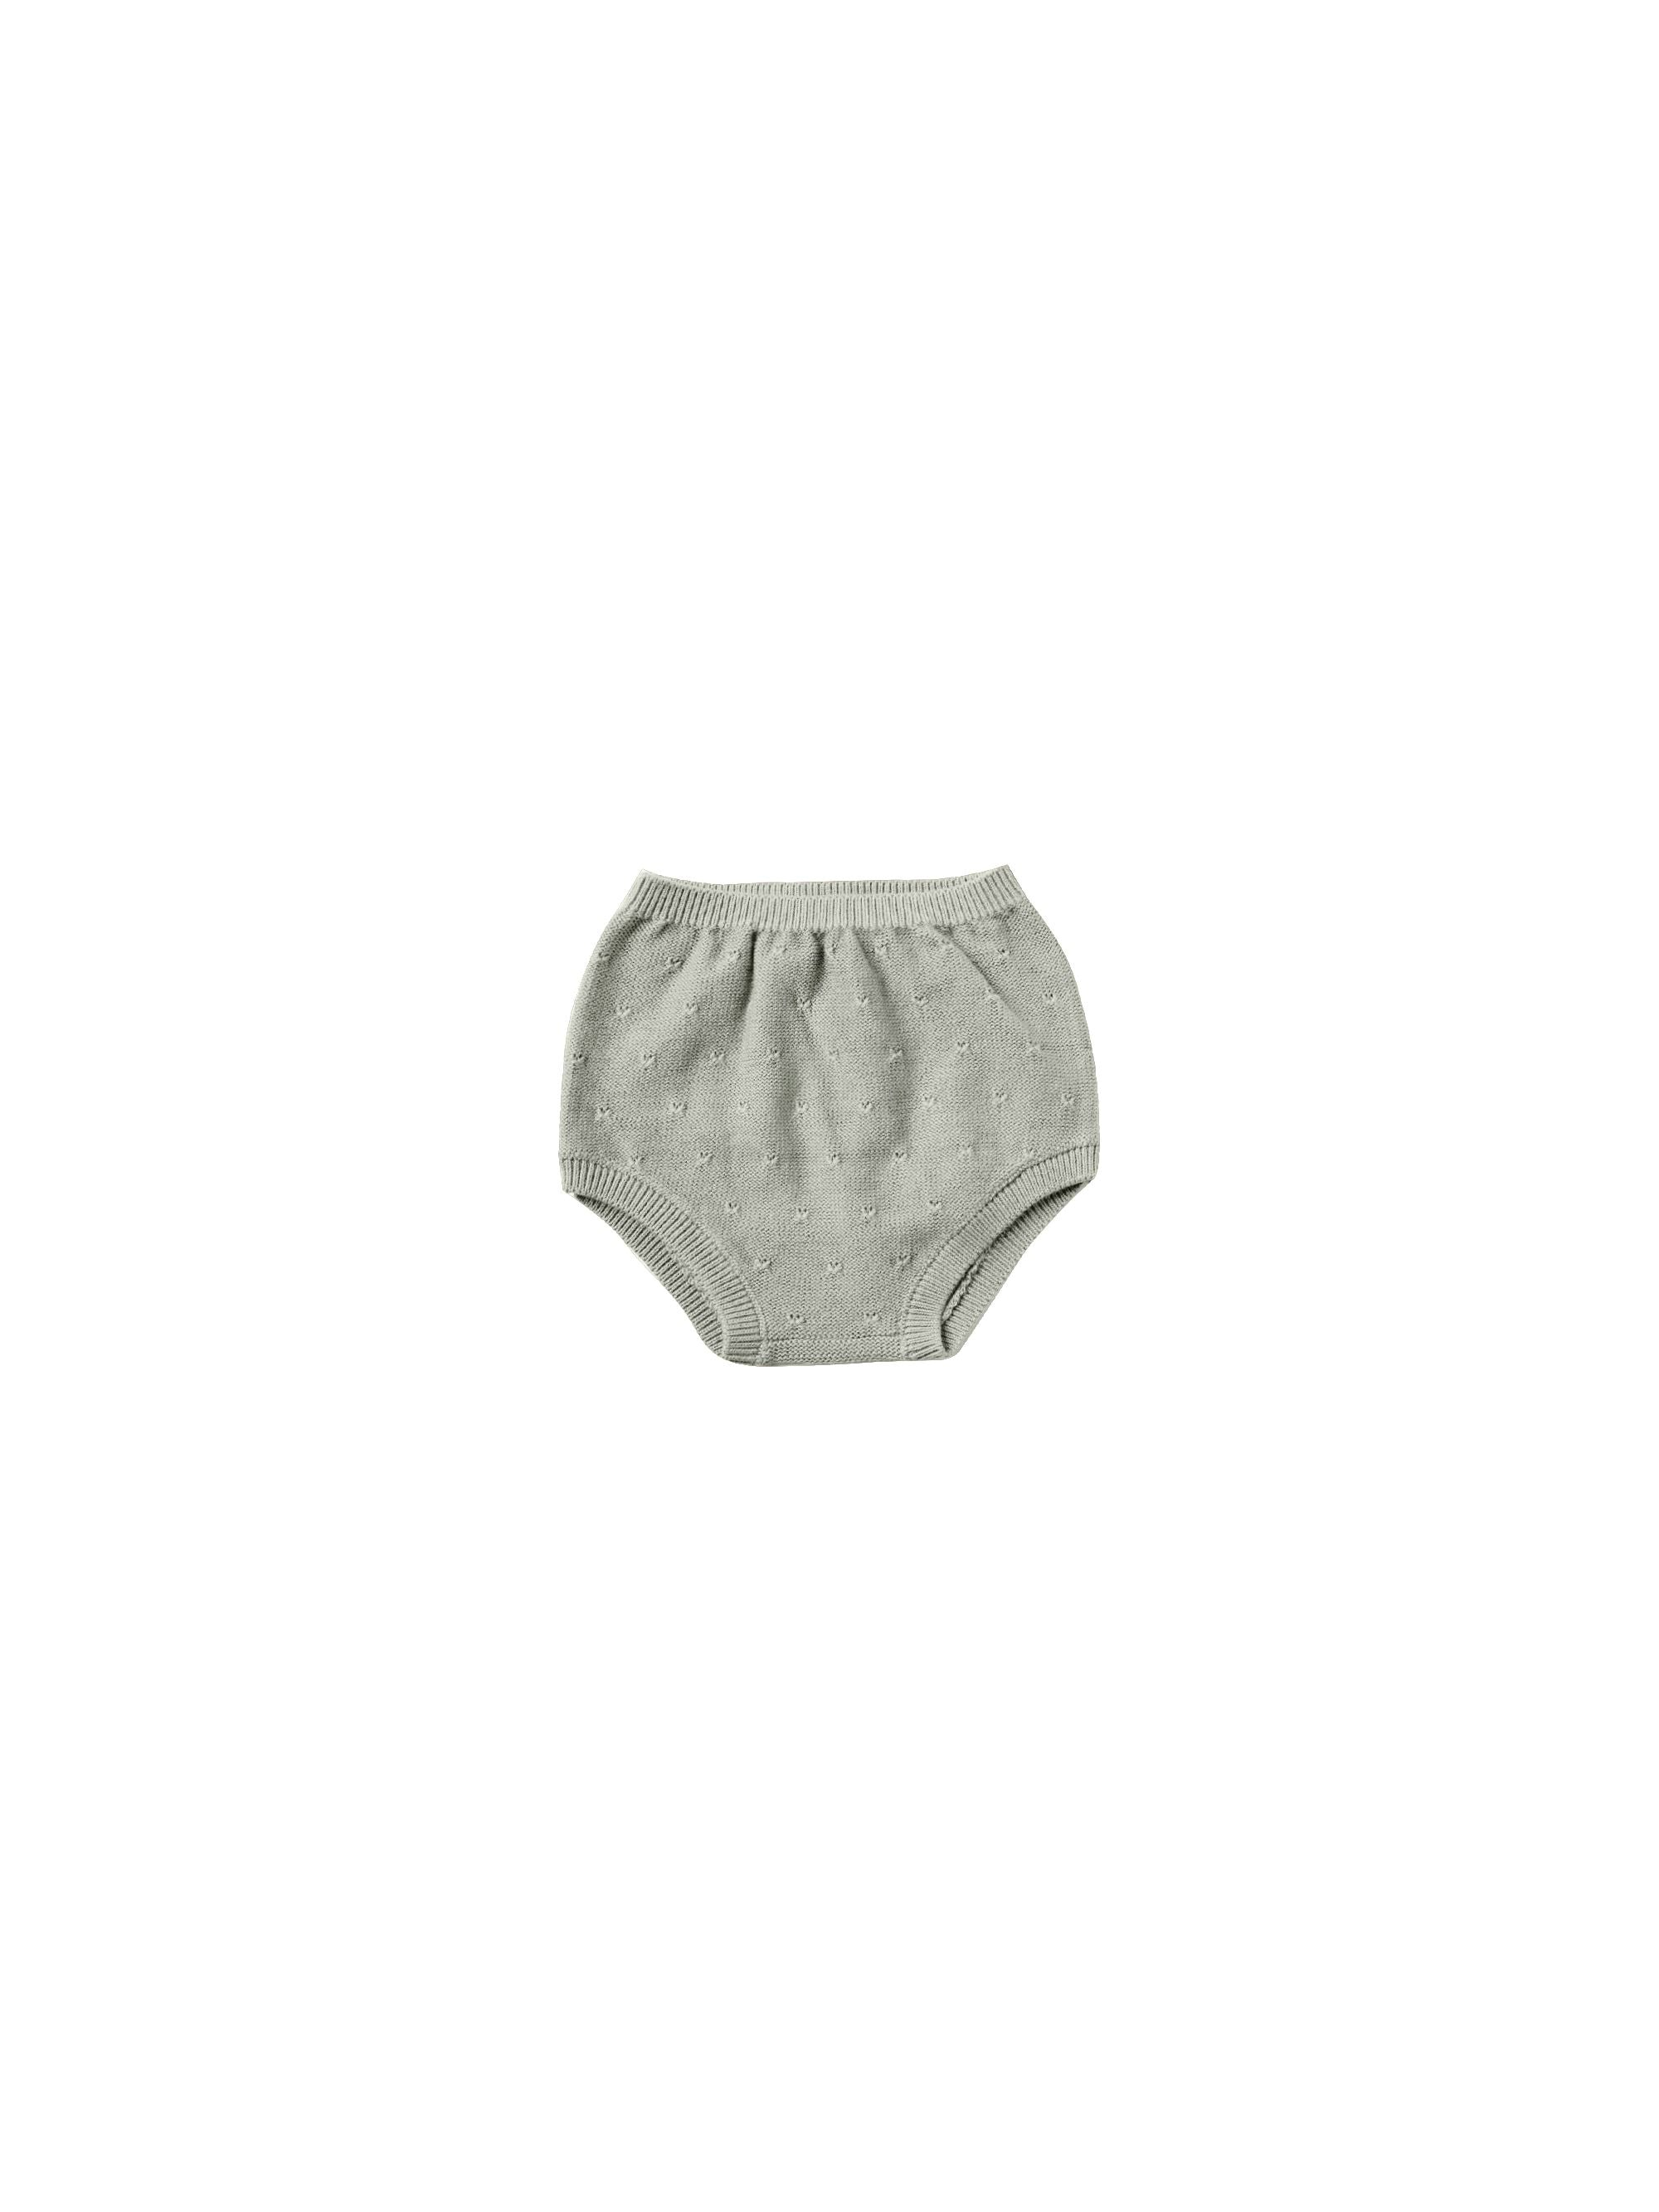 Quincy Mae Knit Bloomer-Assorted Colors